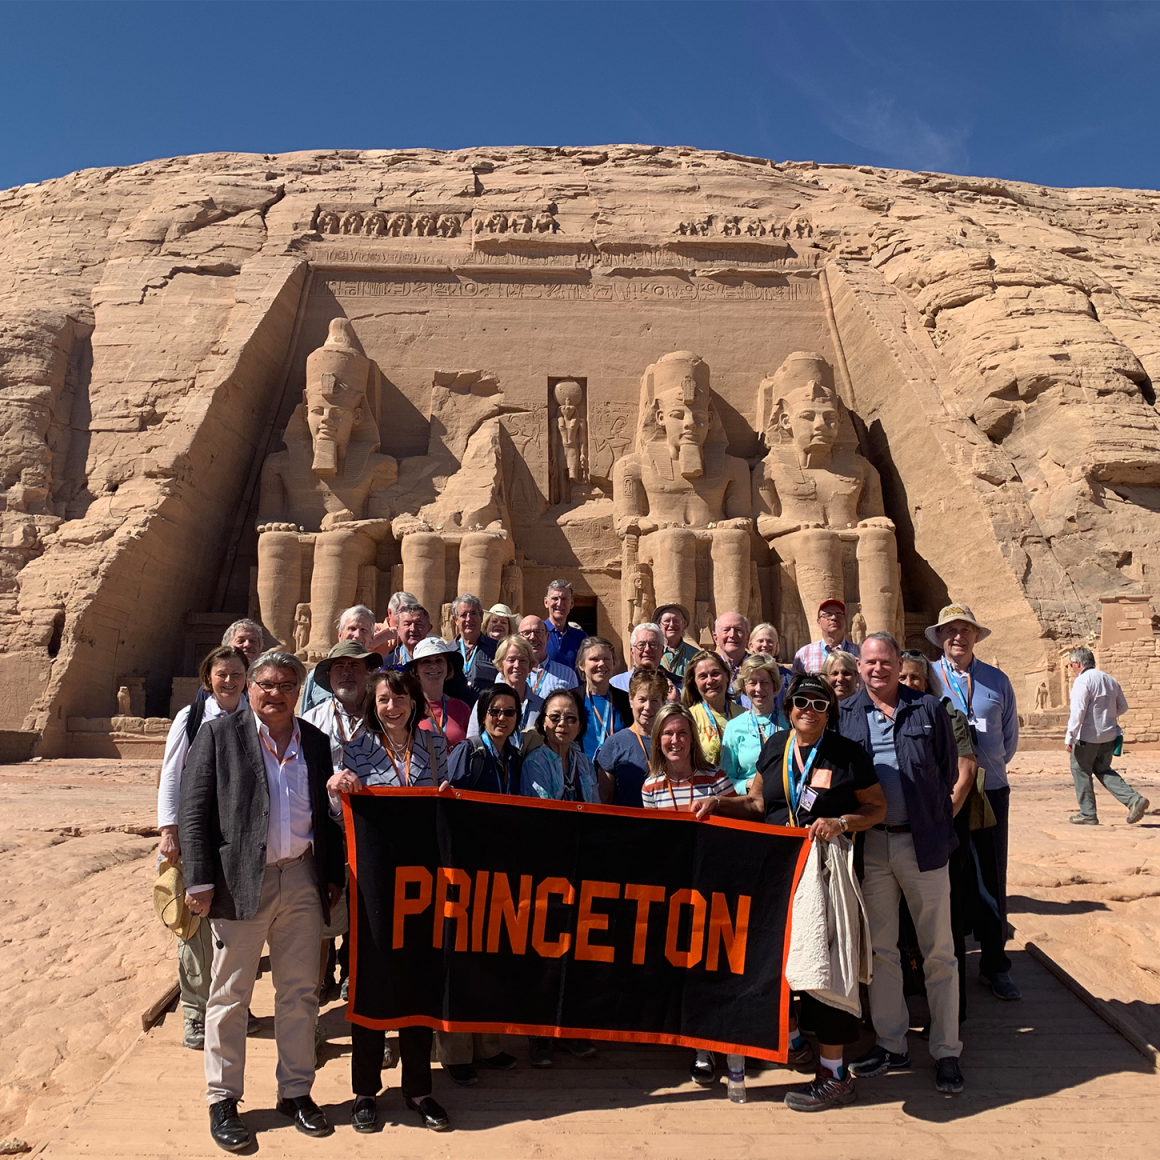 Travelers with Princeton banner in the Egyptian desert.